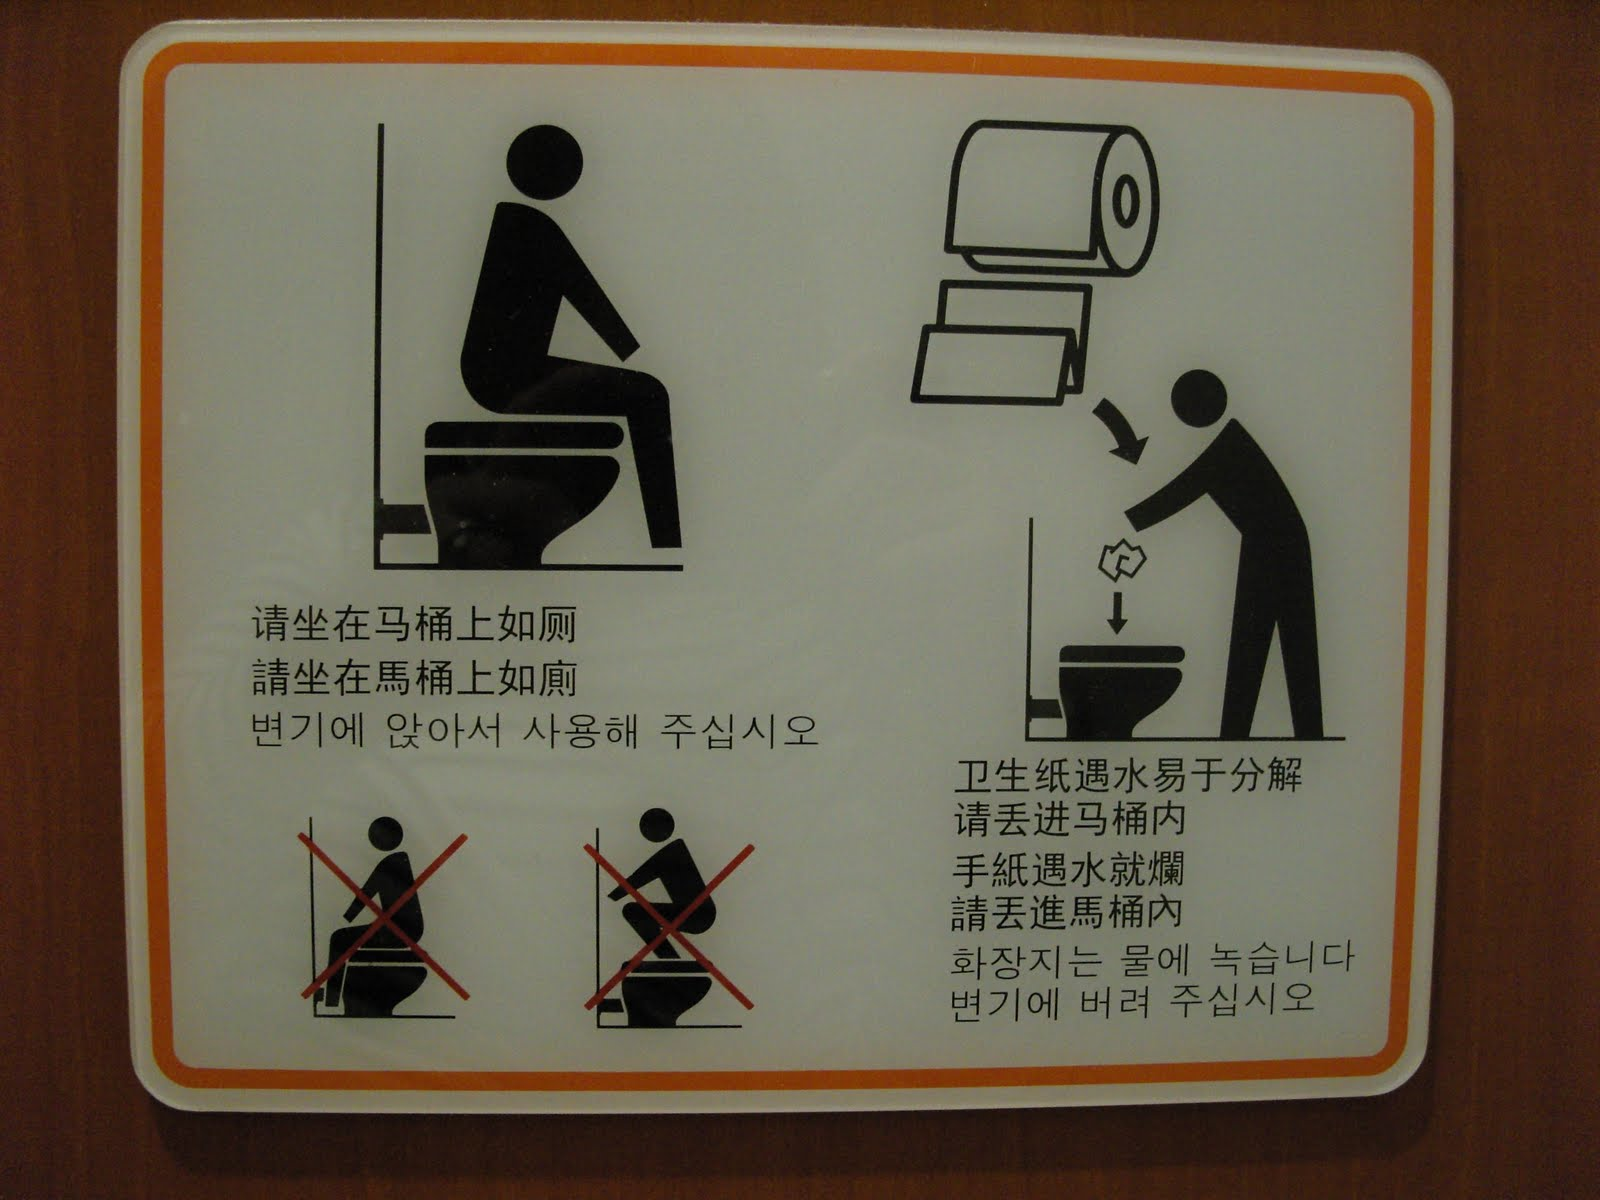 How to use commode bathroom - How To Use A Toilet